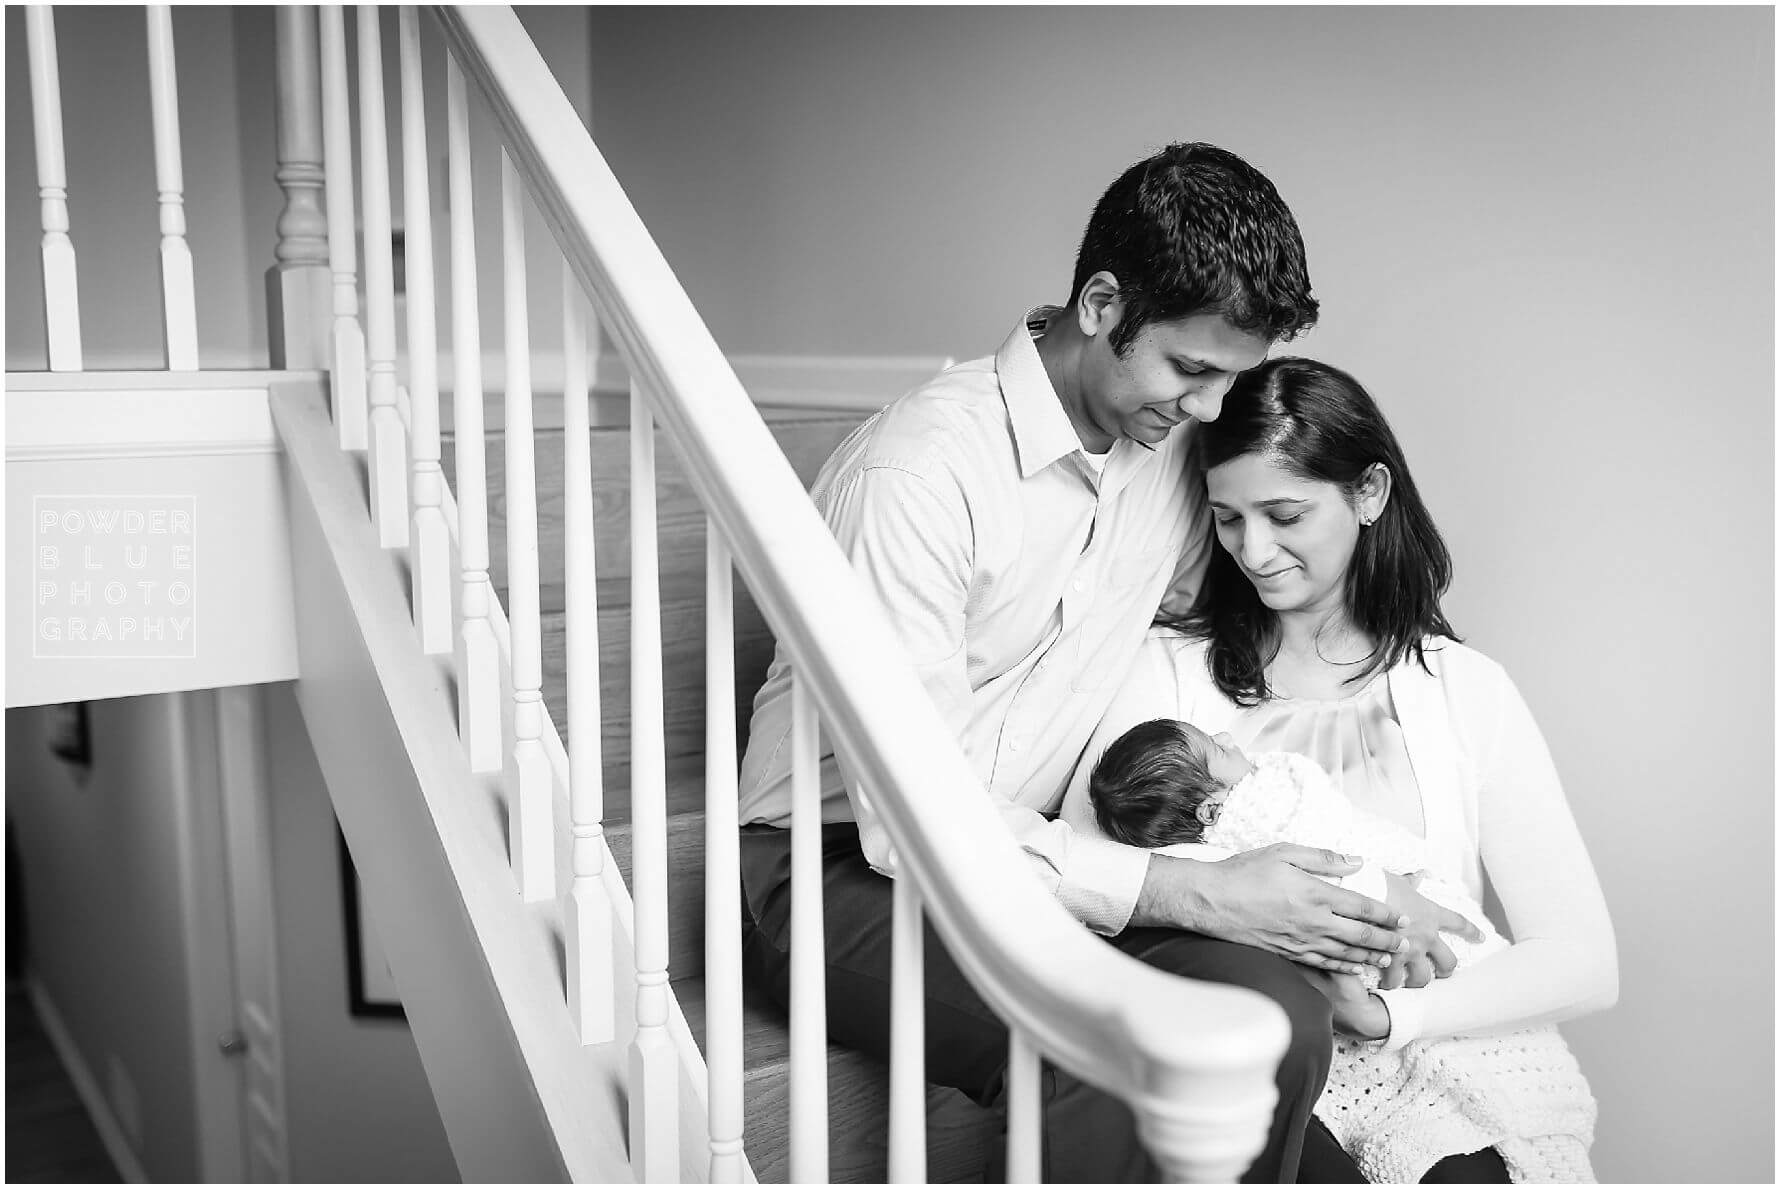 pittsburgh newborn photographer lifestyle photography session. newborn baby in black & white and color portraits on a bed in a home.